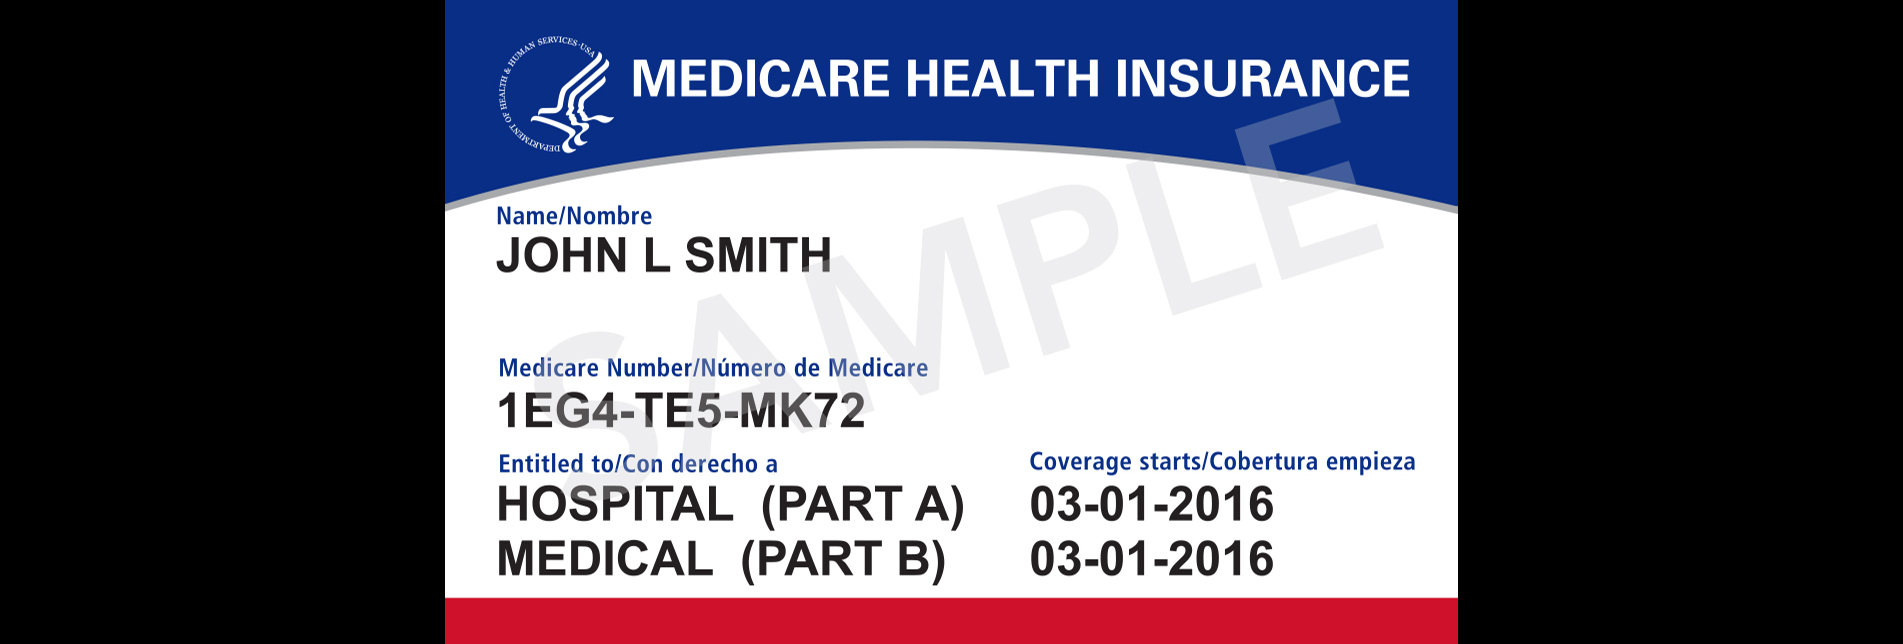 MEDICARE NEWS: New 2018 Medicare Card Information!